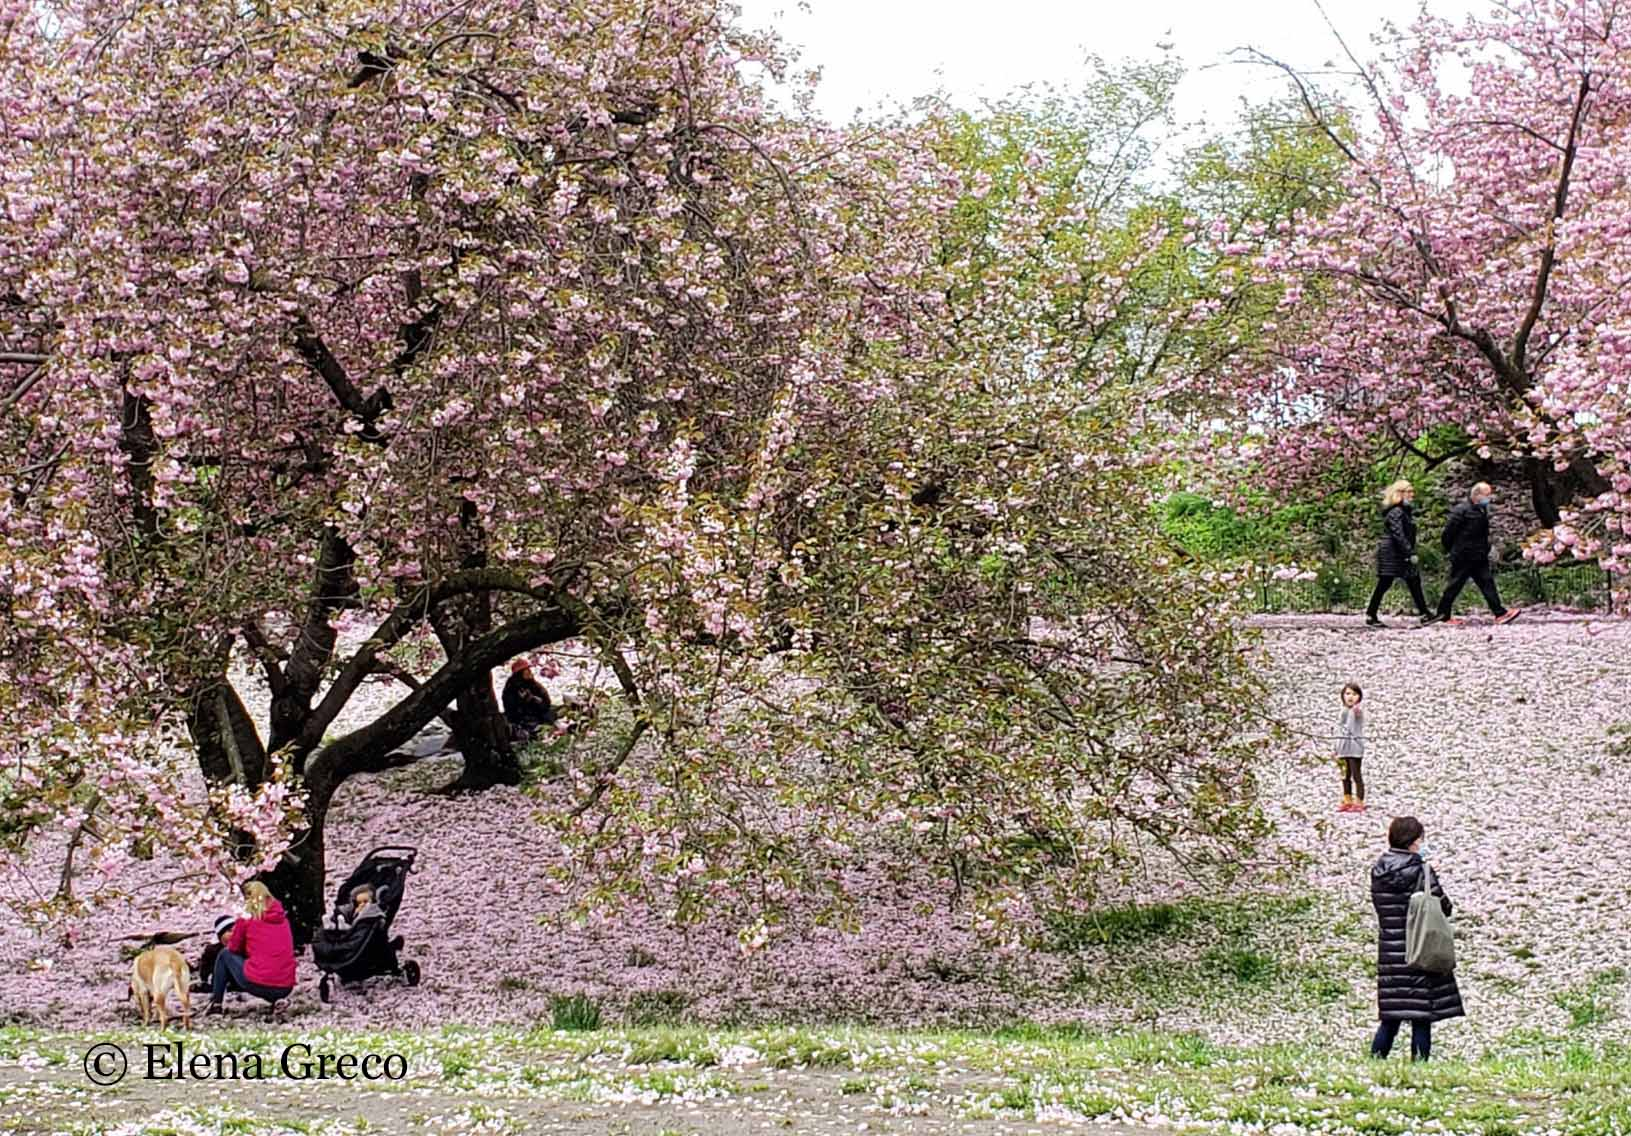 ElenaGreco-043020-cherry blossoms-people2-cropped-wm